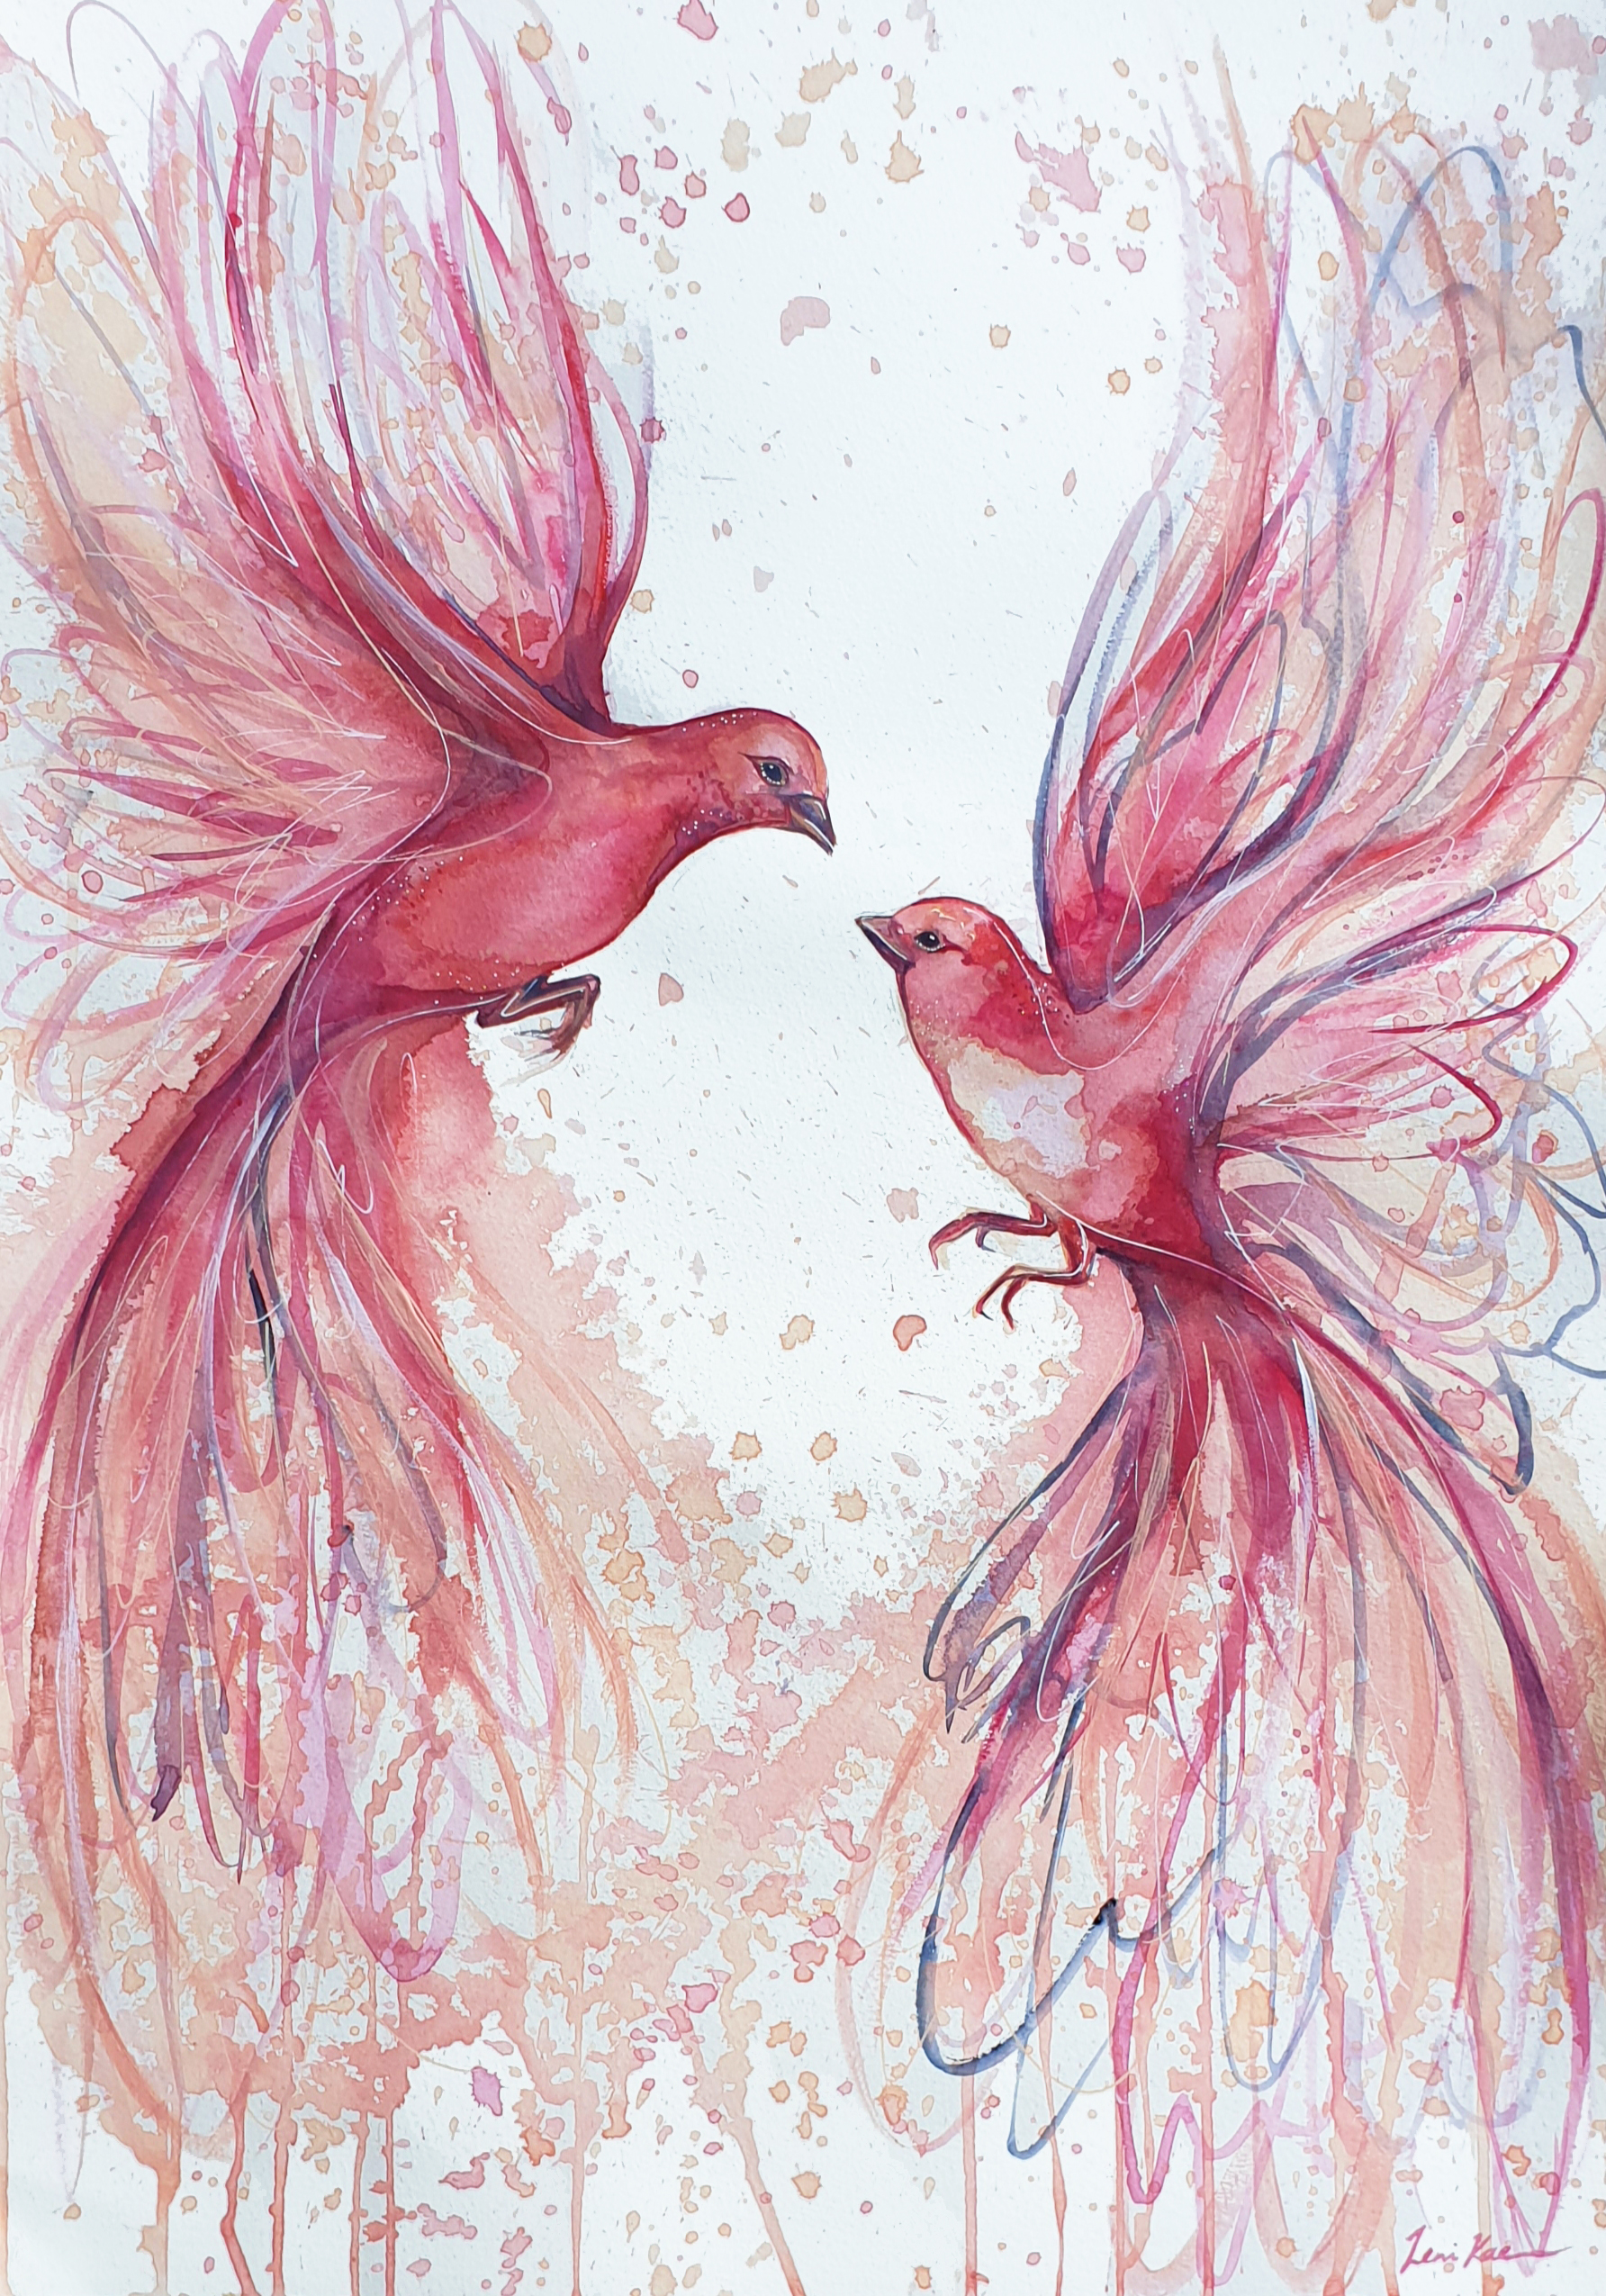 Leni Kae When Love Is In The Air Pink Birds Flying Watercolour Art 2